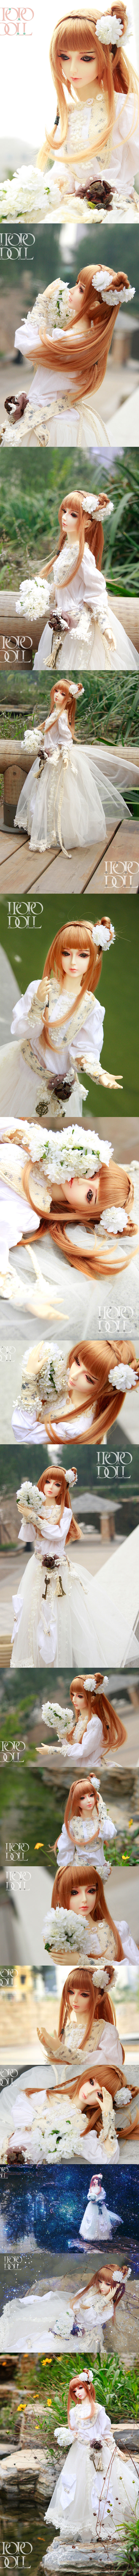 BJD Cloud Girl 60cm Ball-jointed doll